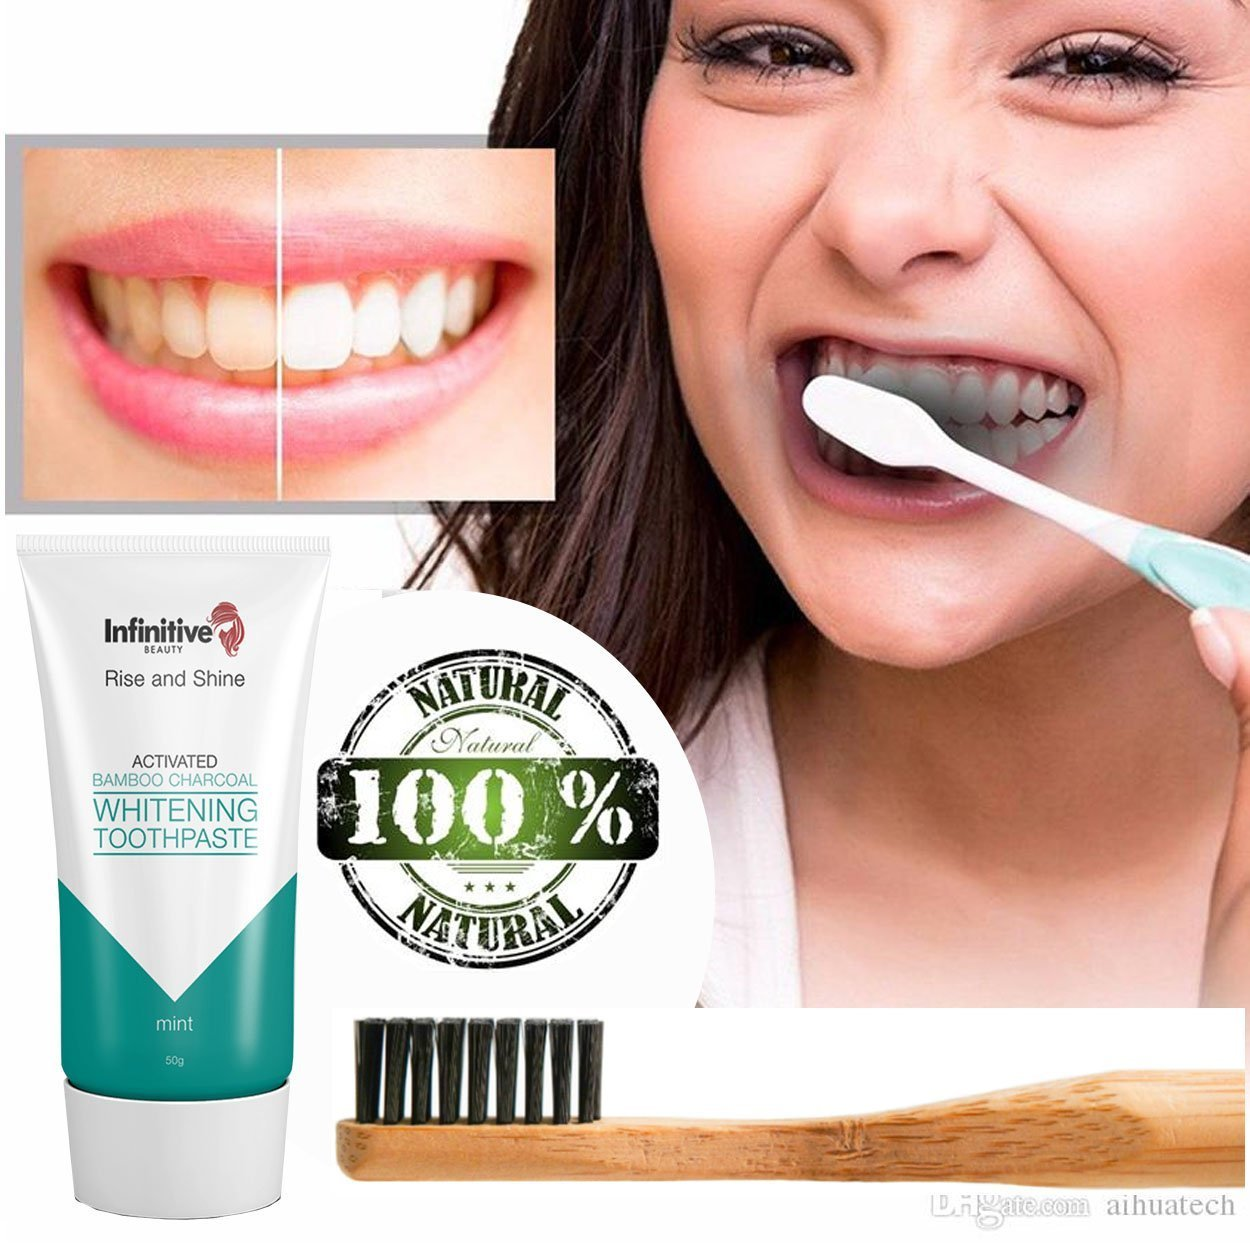 Infinitive Beauty Rise And Shine Activated Bamboo Charcoal Whitening Toothpaste by  Beauty Pop Cosmetics